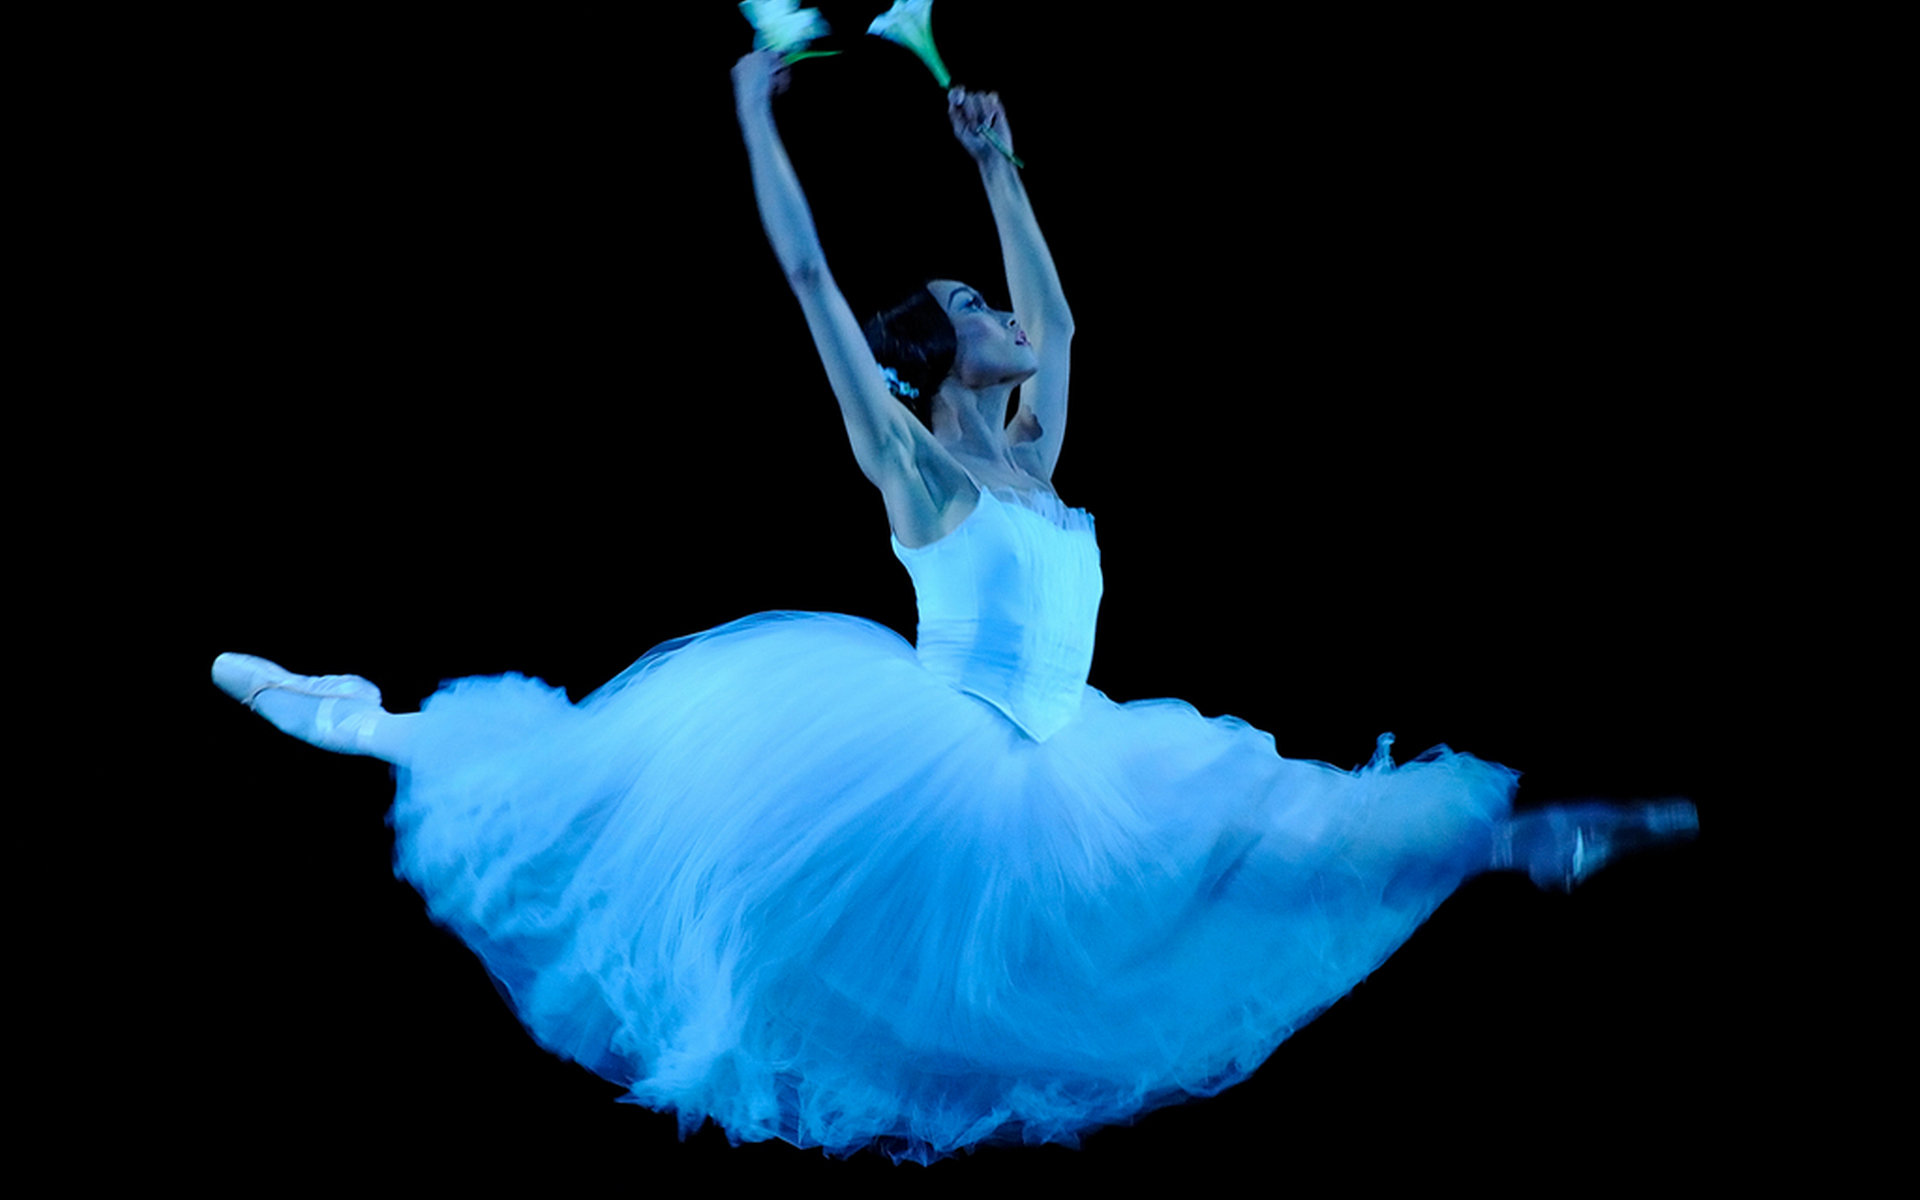 High Resolution Ballet Hd 1920x1200 Wallpaper ID445220 For Desktop